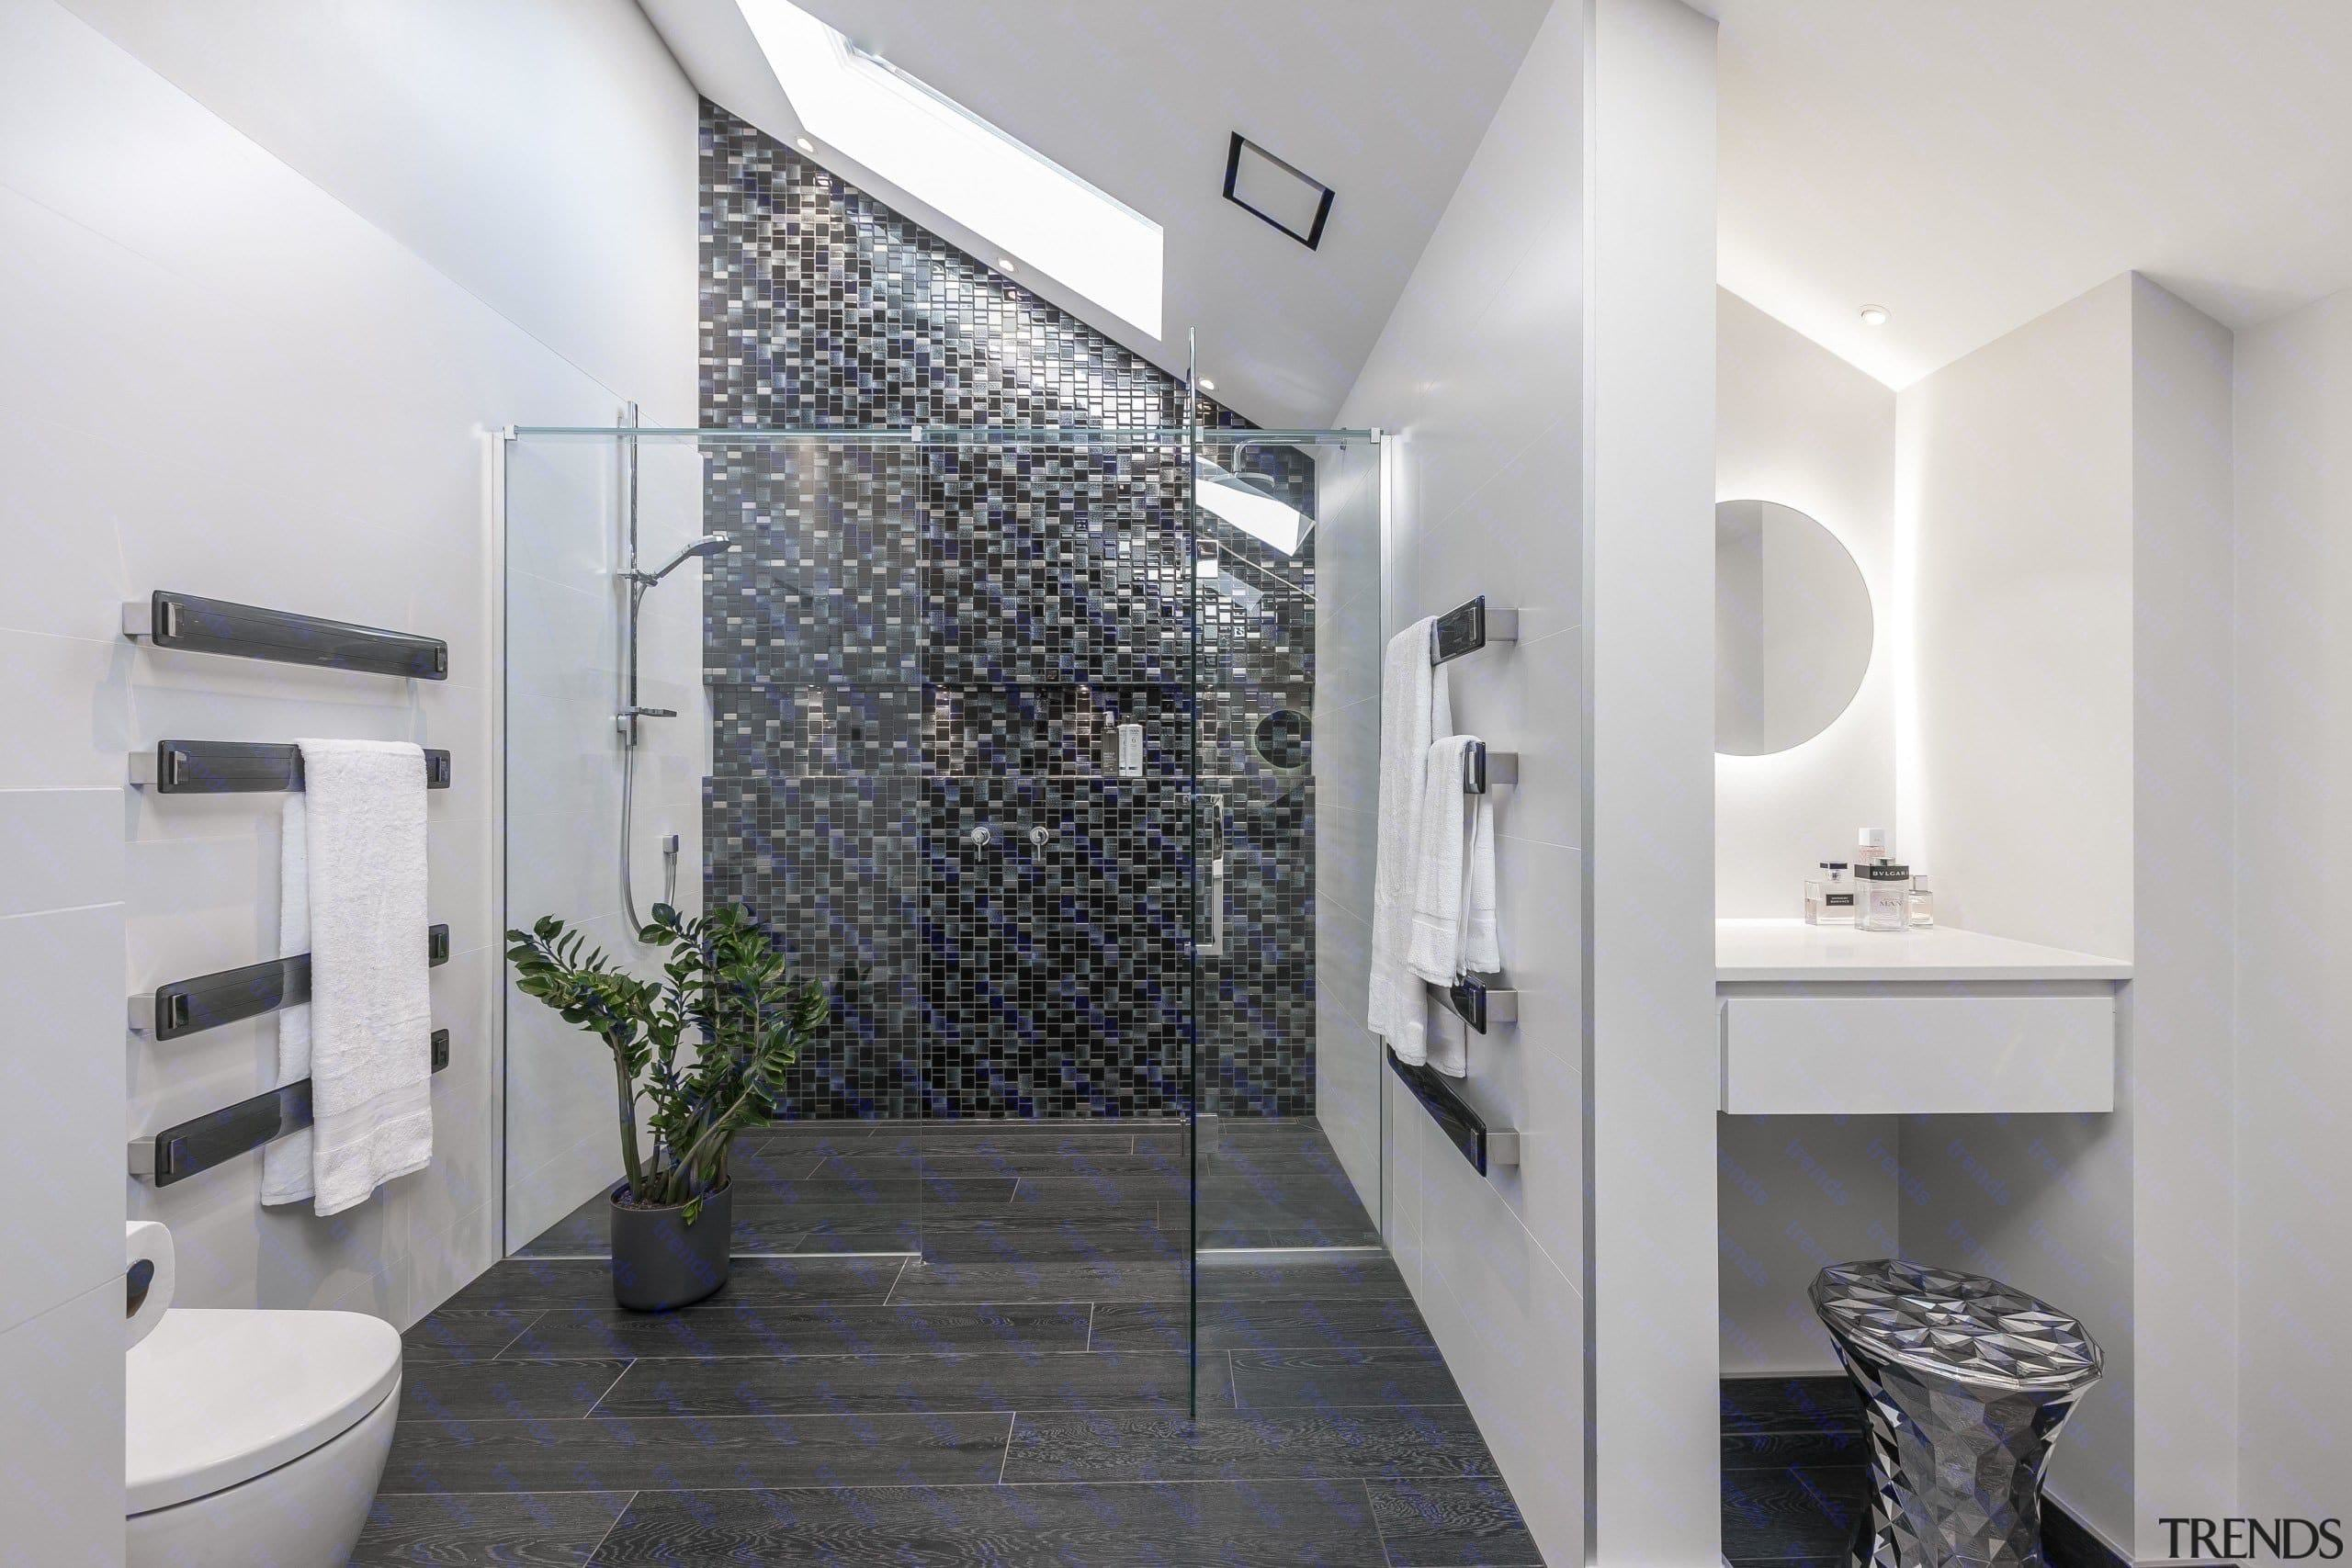 See the bathroom architecture, bathroom, floor, home, interior design, property, real estate, room, tile, wall, gray, white